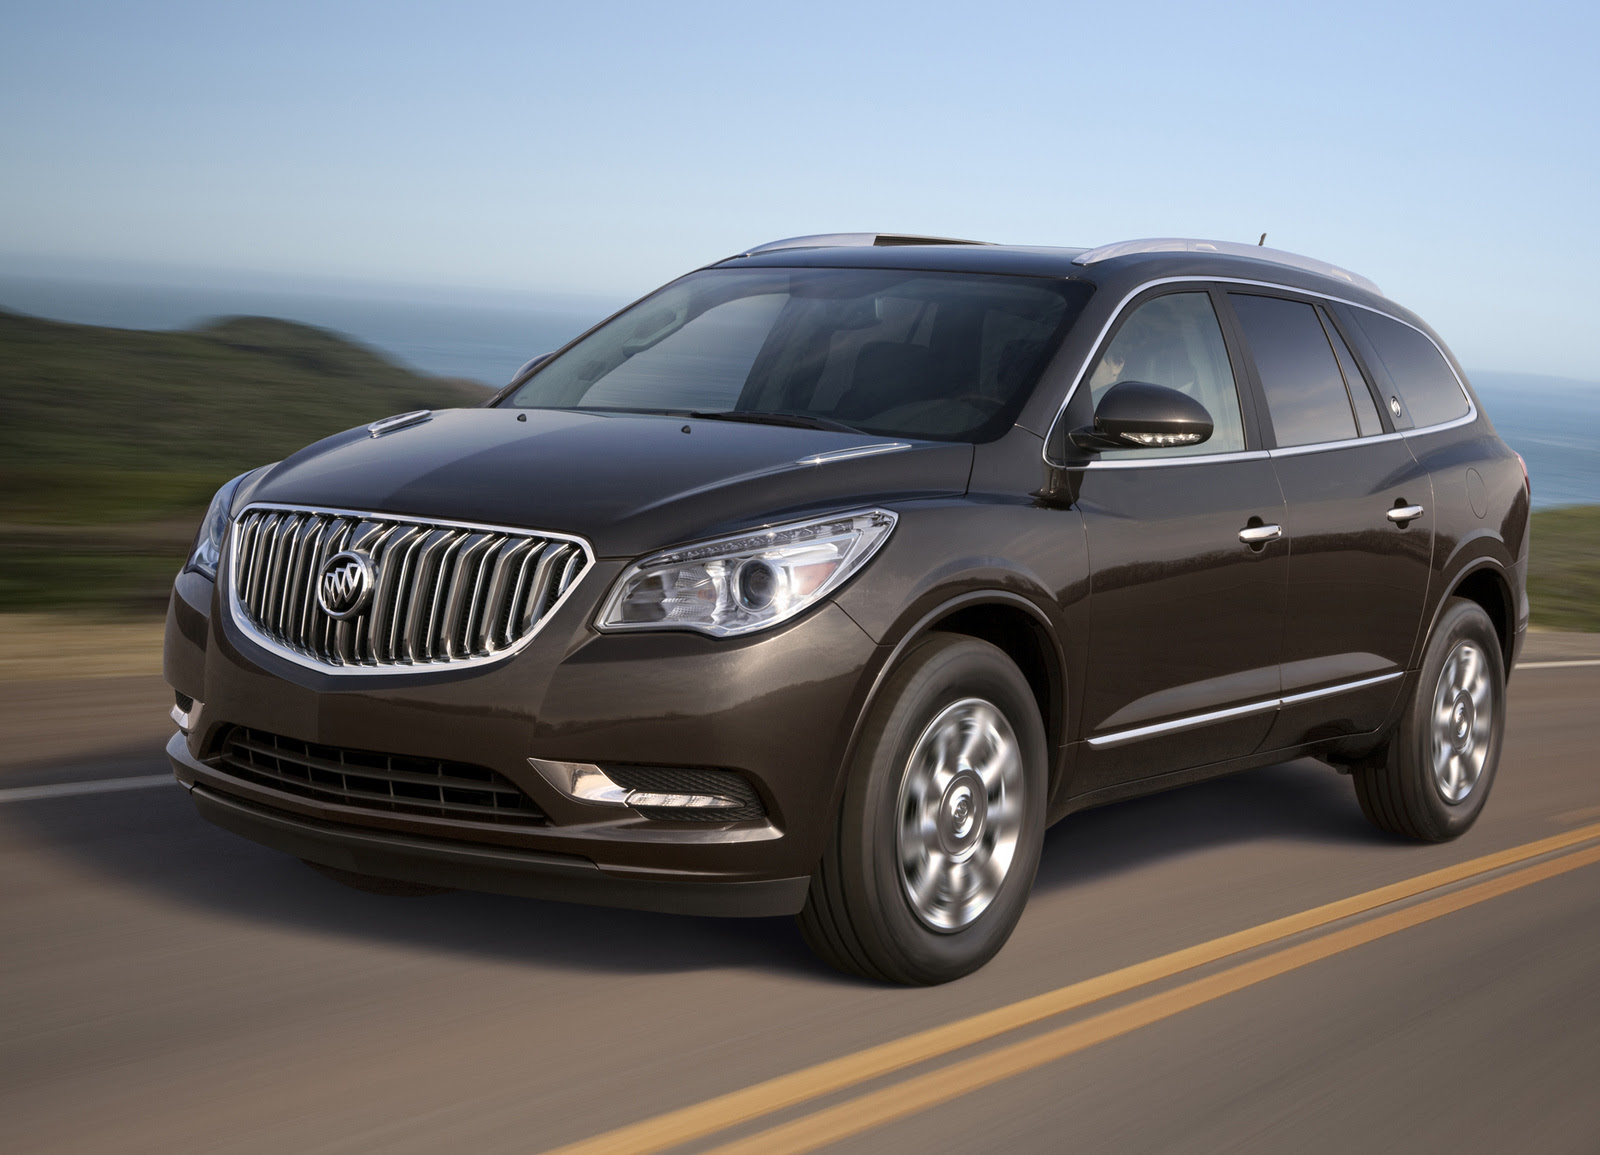 2014 Buick Enclave - Test Drive Review - CarGurus